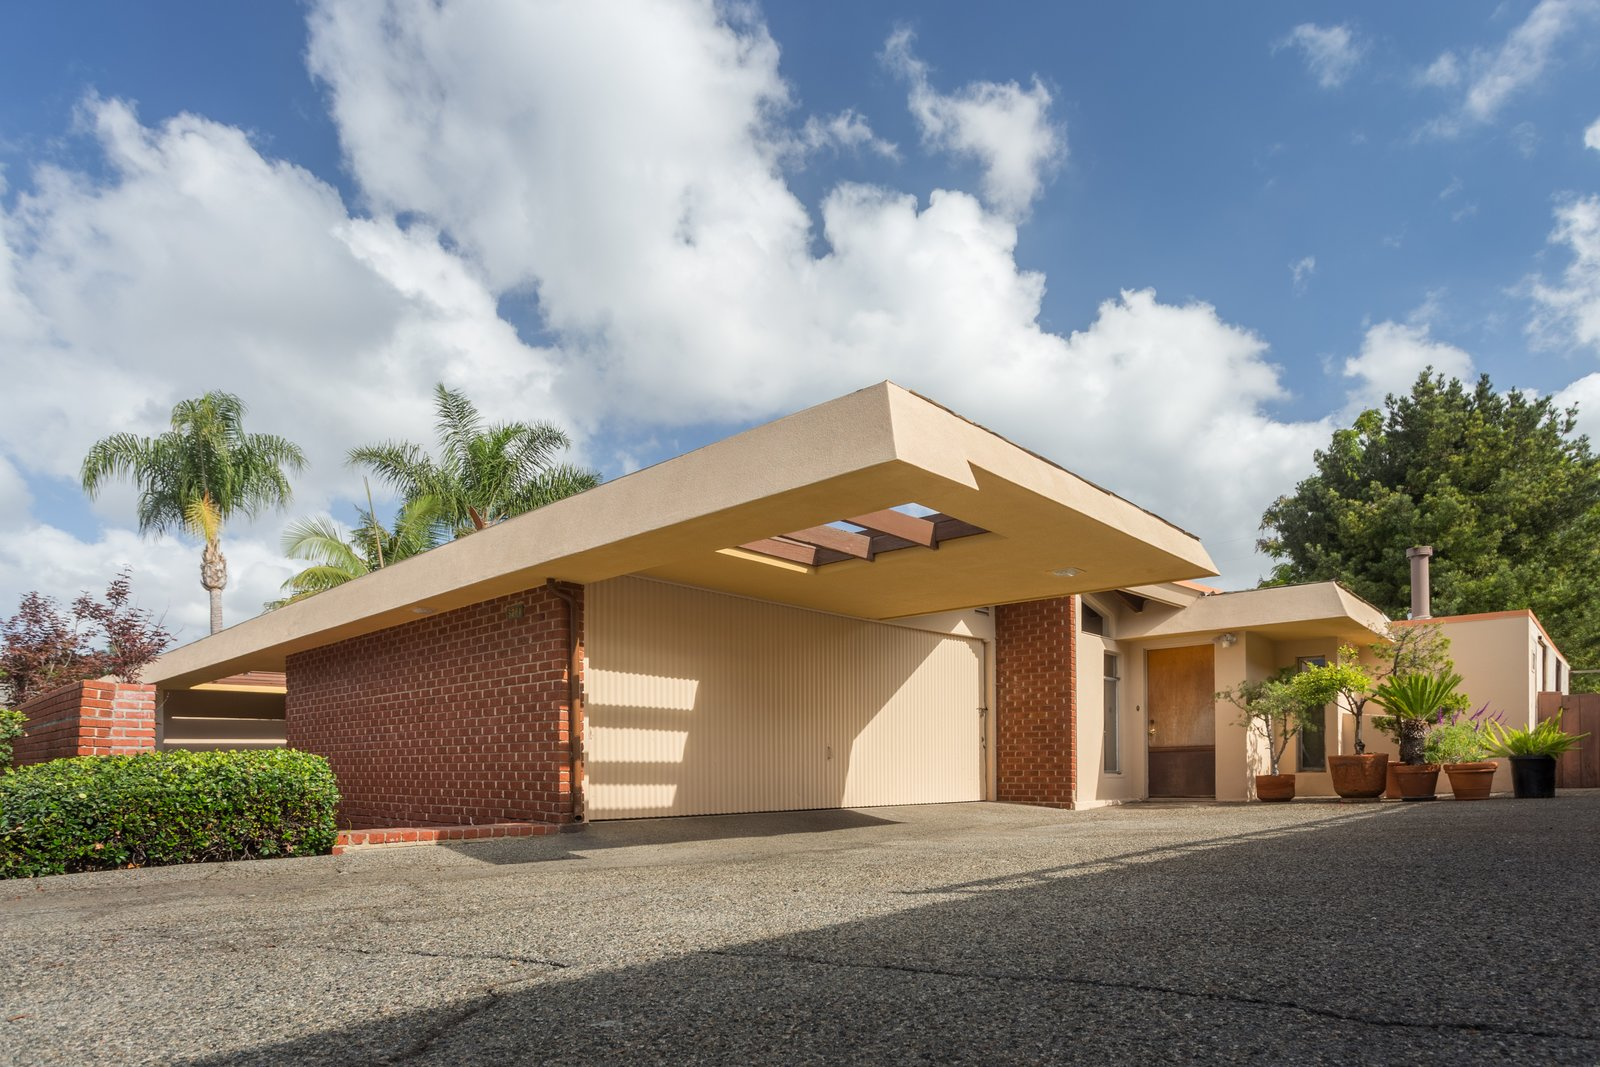 Exterior, Brick Siding Material, and House Building Type  Photo 1 of 6 in A Pristine John Lautner Home in Long Beach Is Available For the First Time